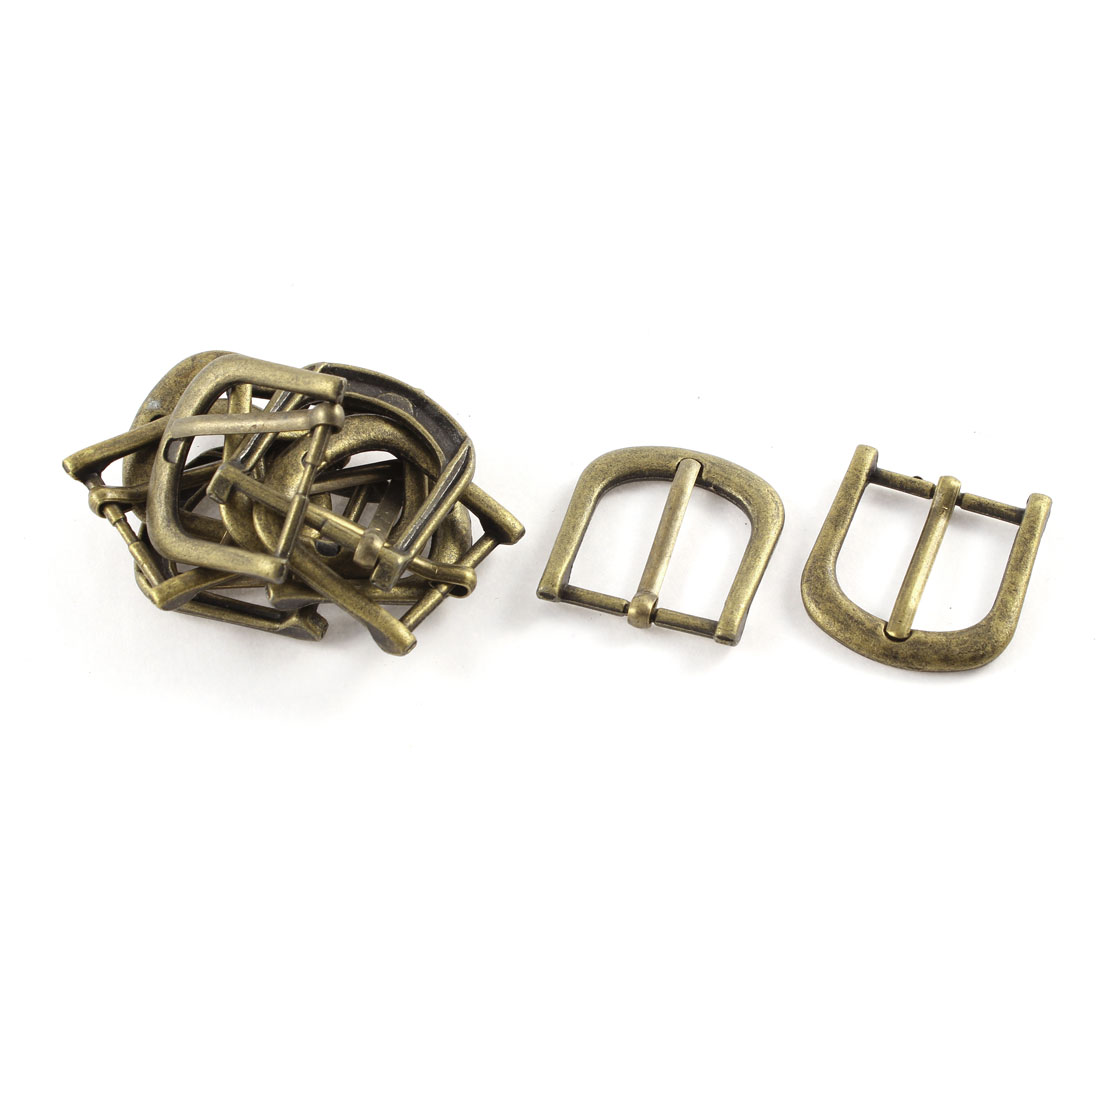 10pcs 34mmx32mm Retro Style Bronze Tone Single Prong Horseshoe Belt Buckle